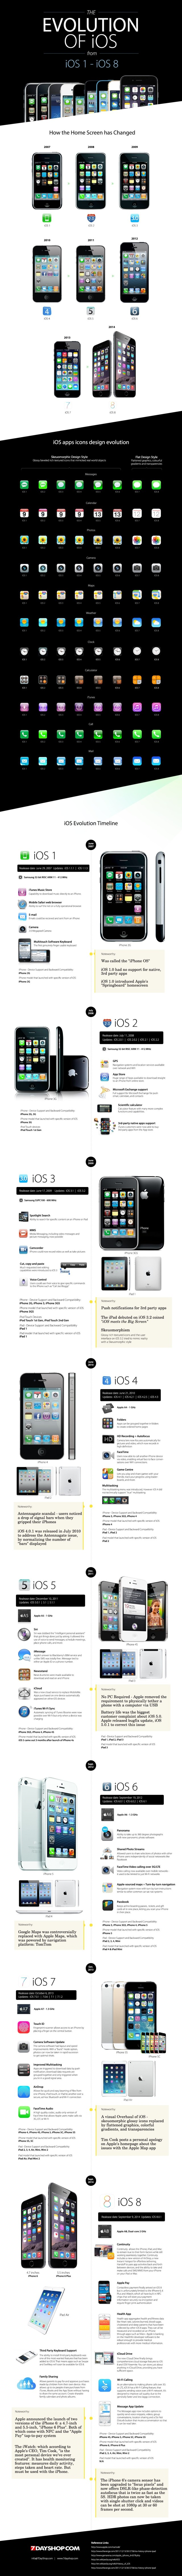 The Evolution of iOS from 1 to 8